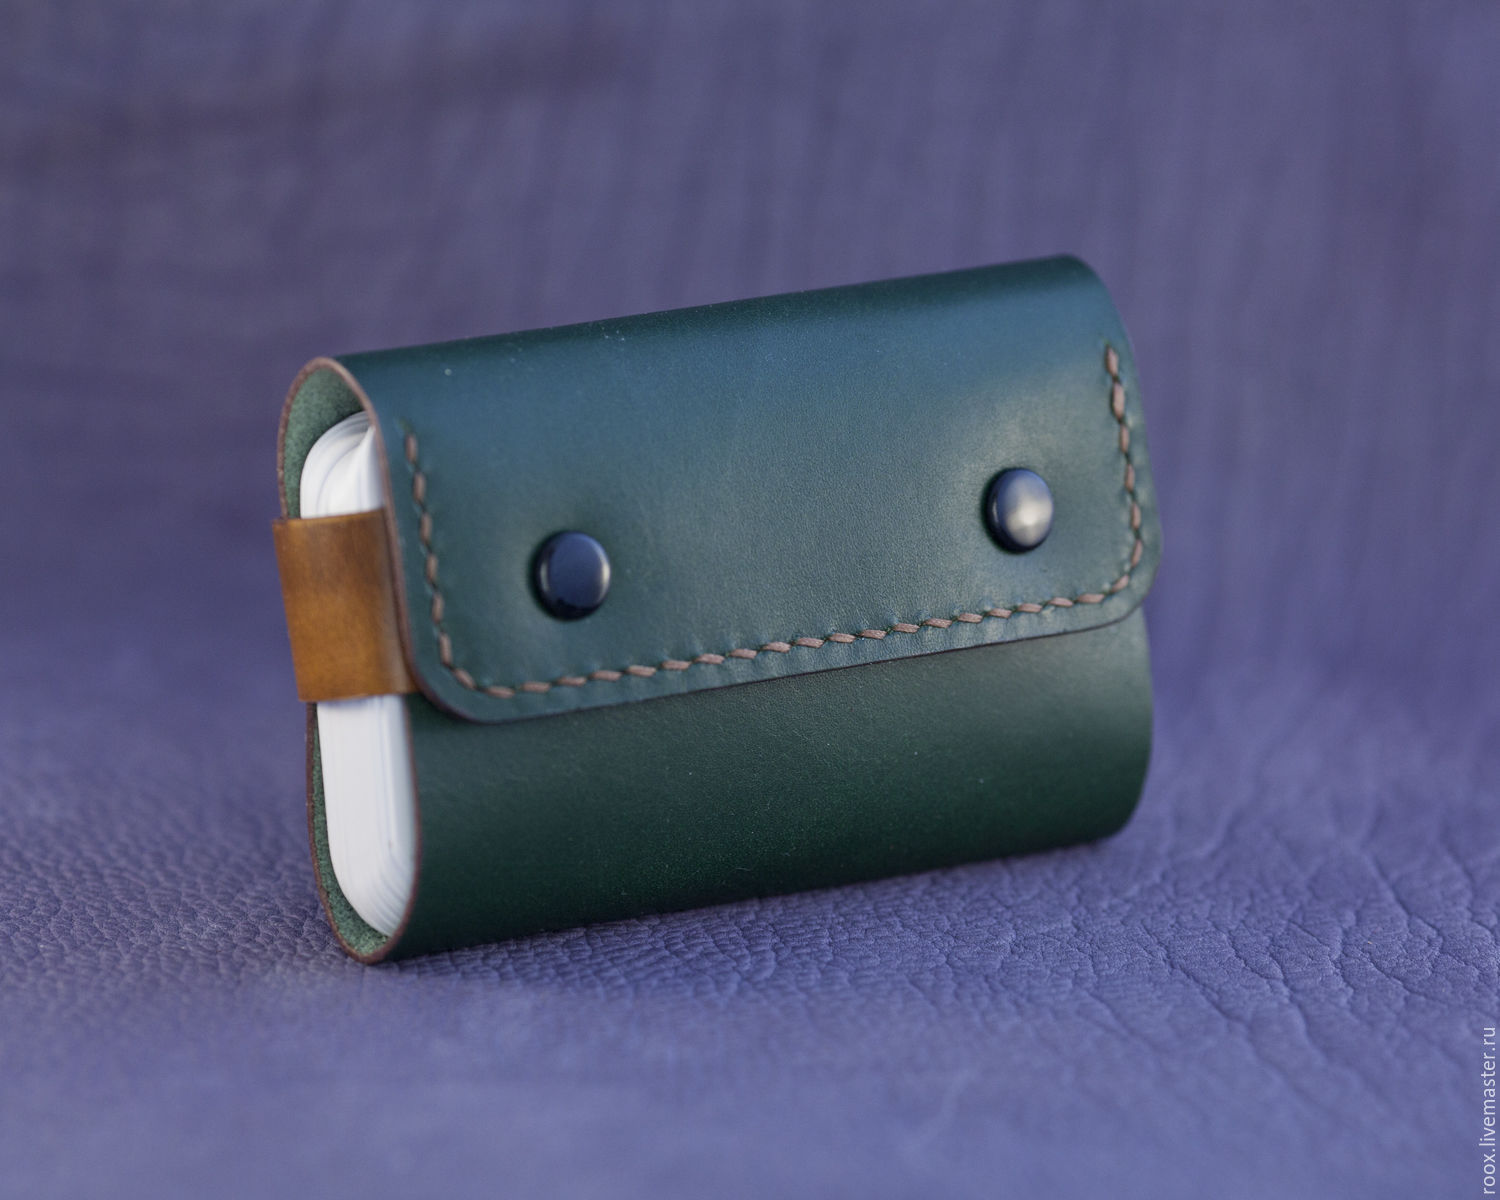 The image business card Holder made of premium Japanese leather ...